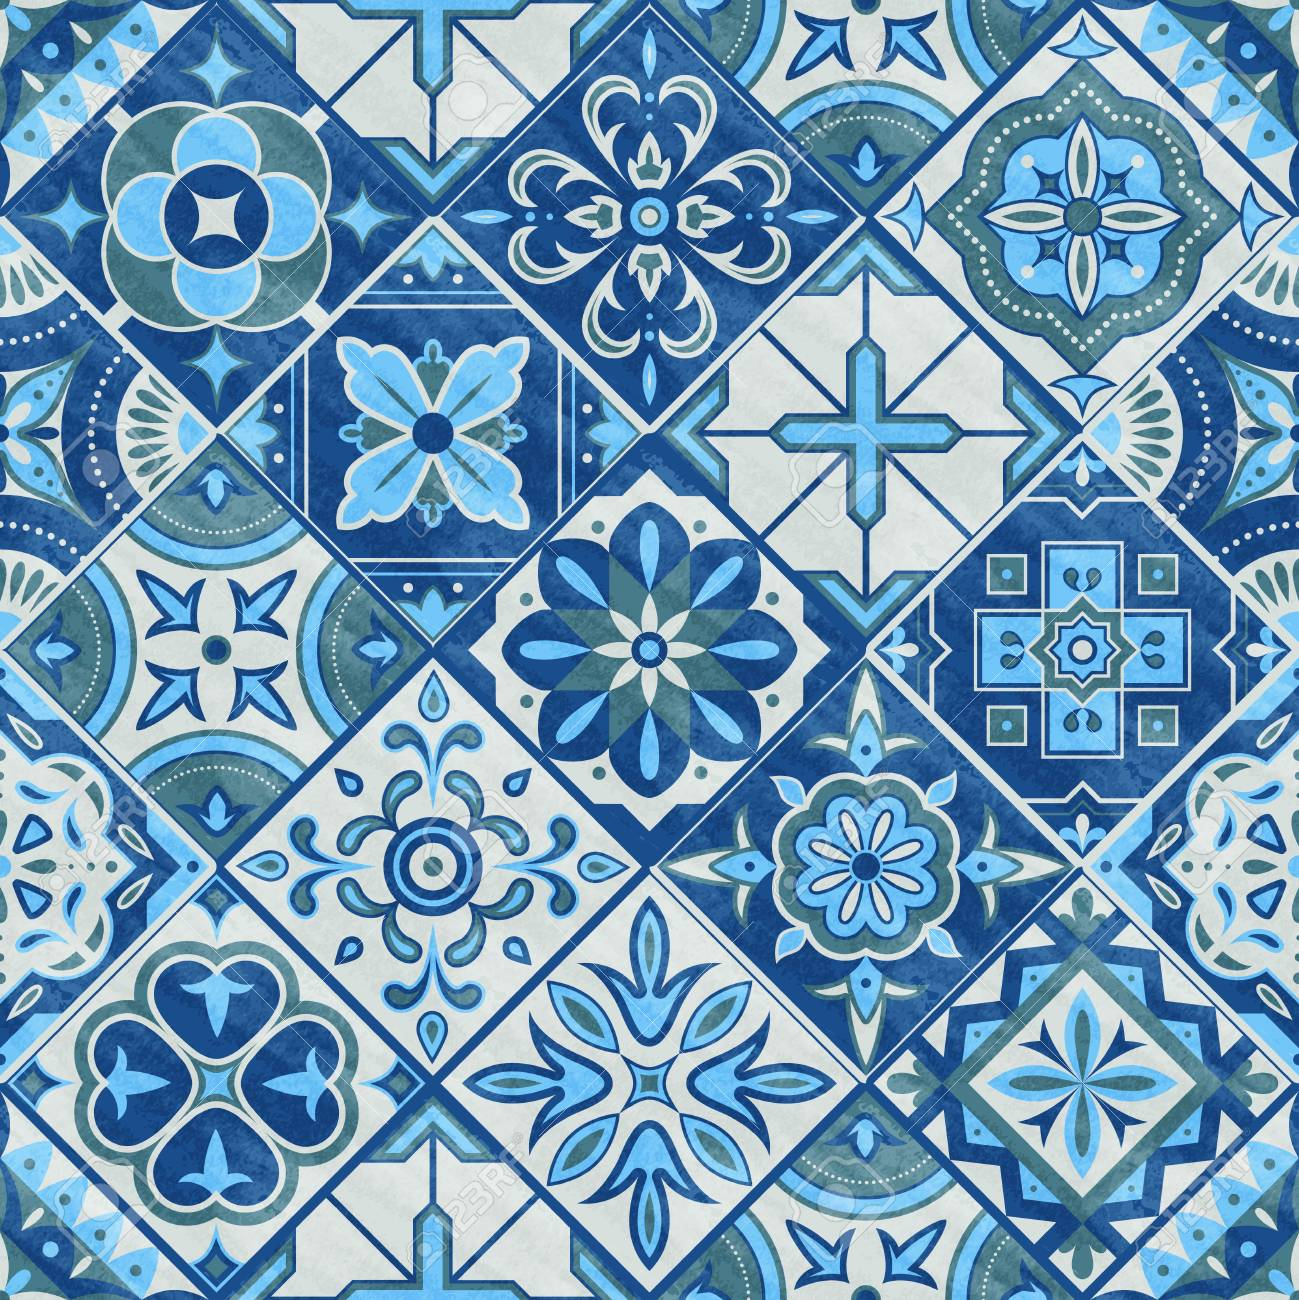 seamless romb patchwork tile in blue gray and green colors